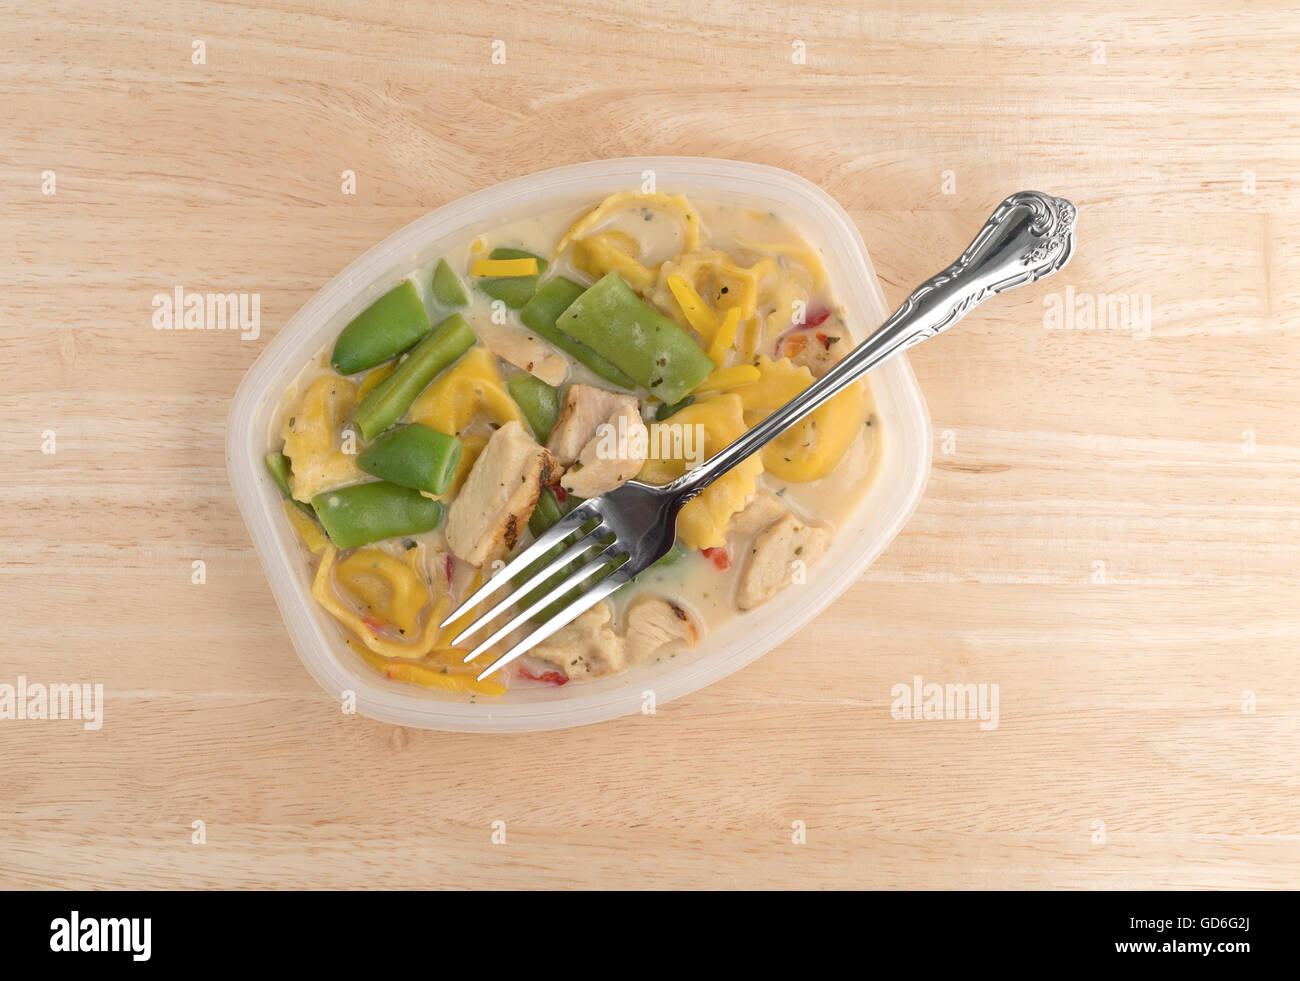 Top view of a chicken with tortellini and vegetable TV dinner in a plastic tray with a fork in the food atop a wood - Stock Image